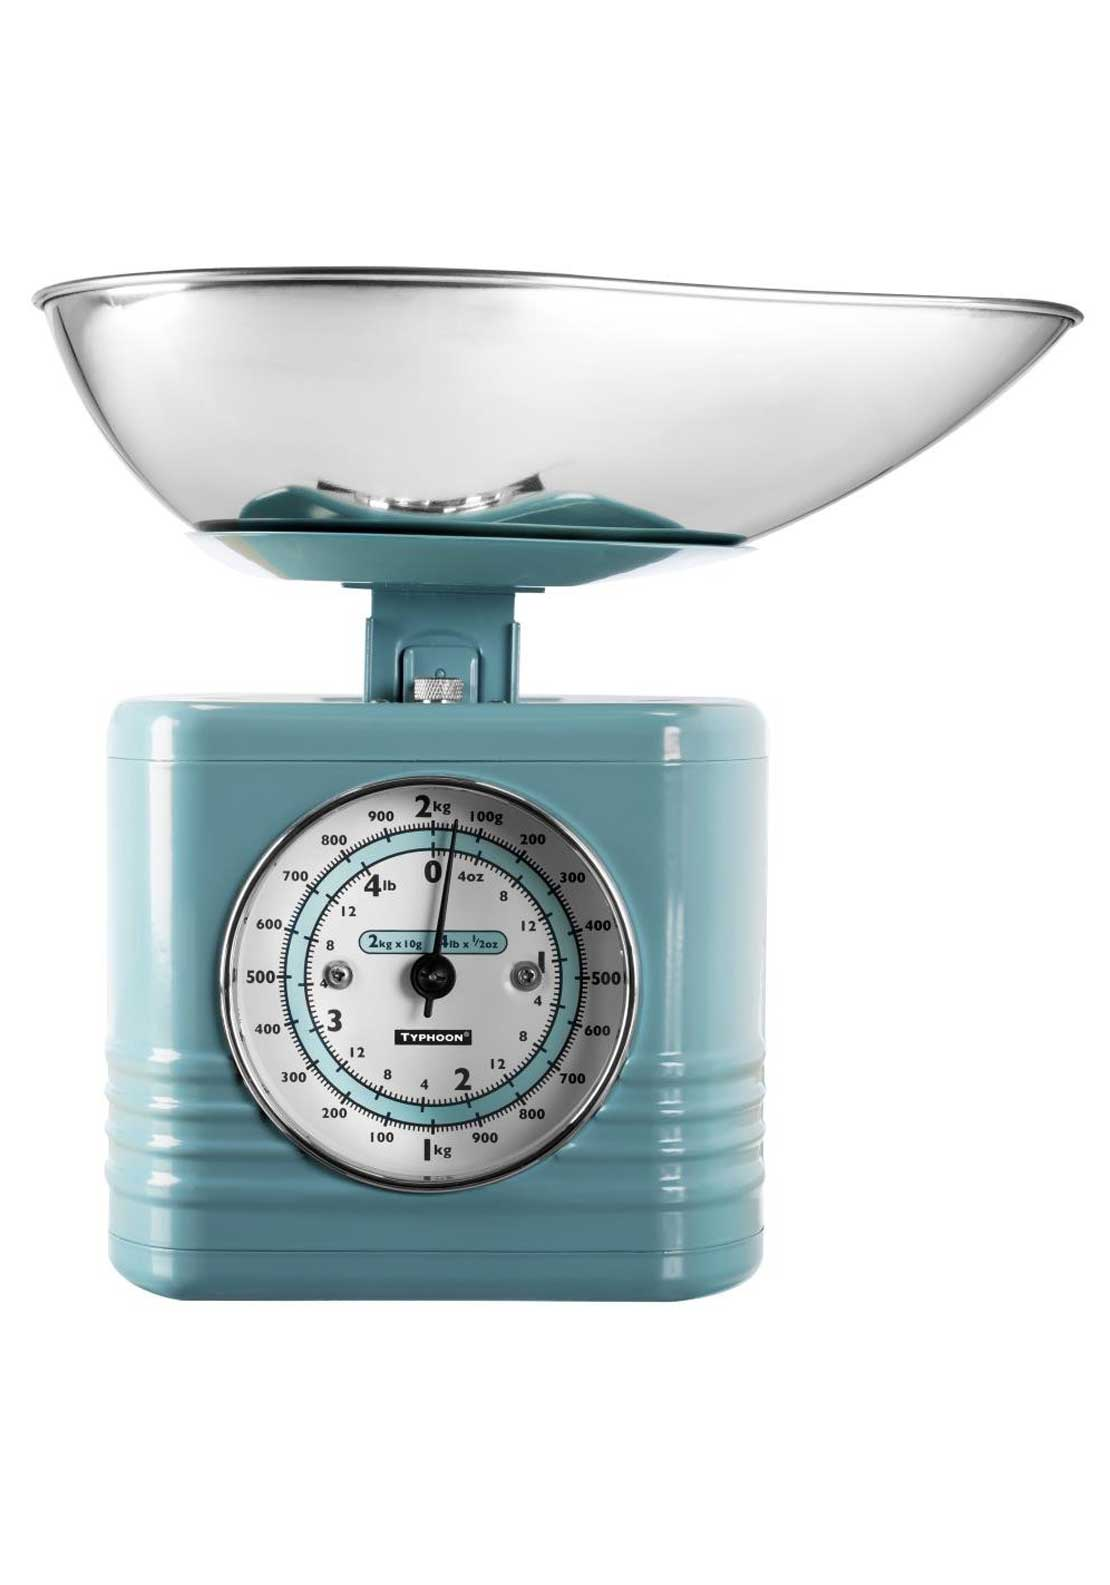 Typhoon 2kg Vintage Kitchen Scales, Blue